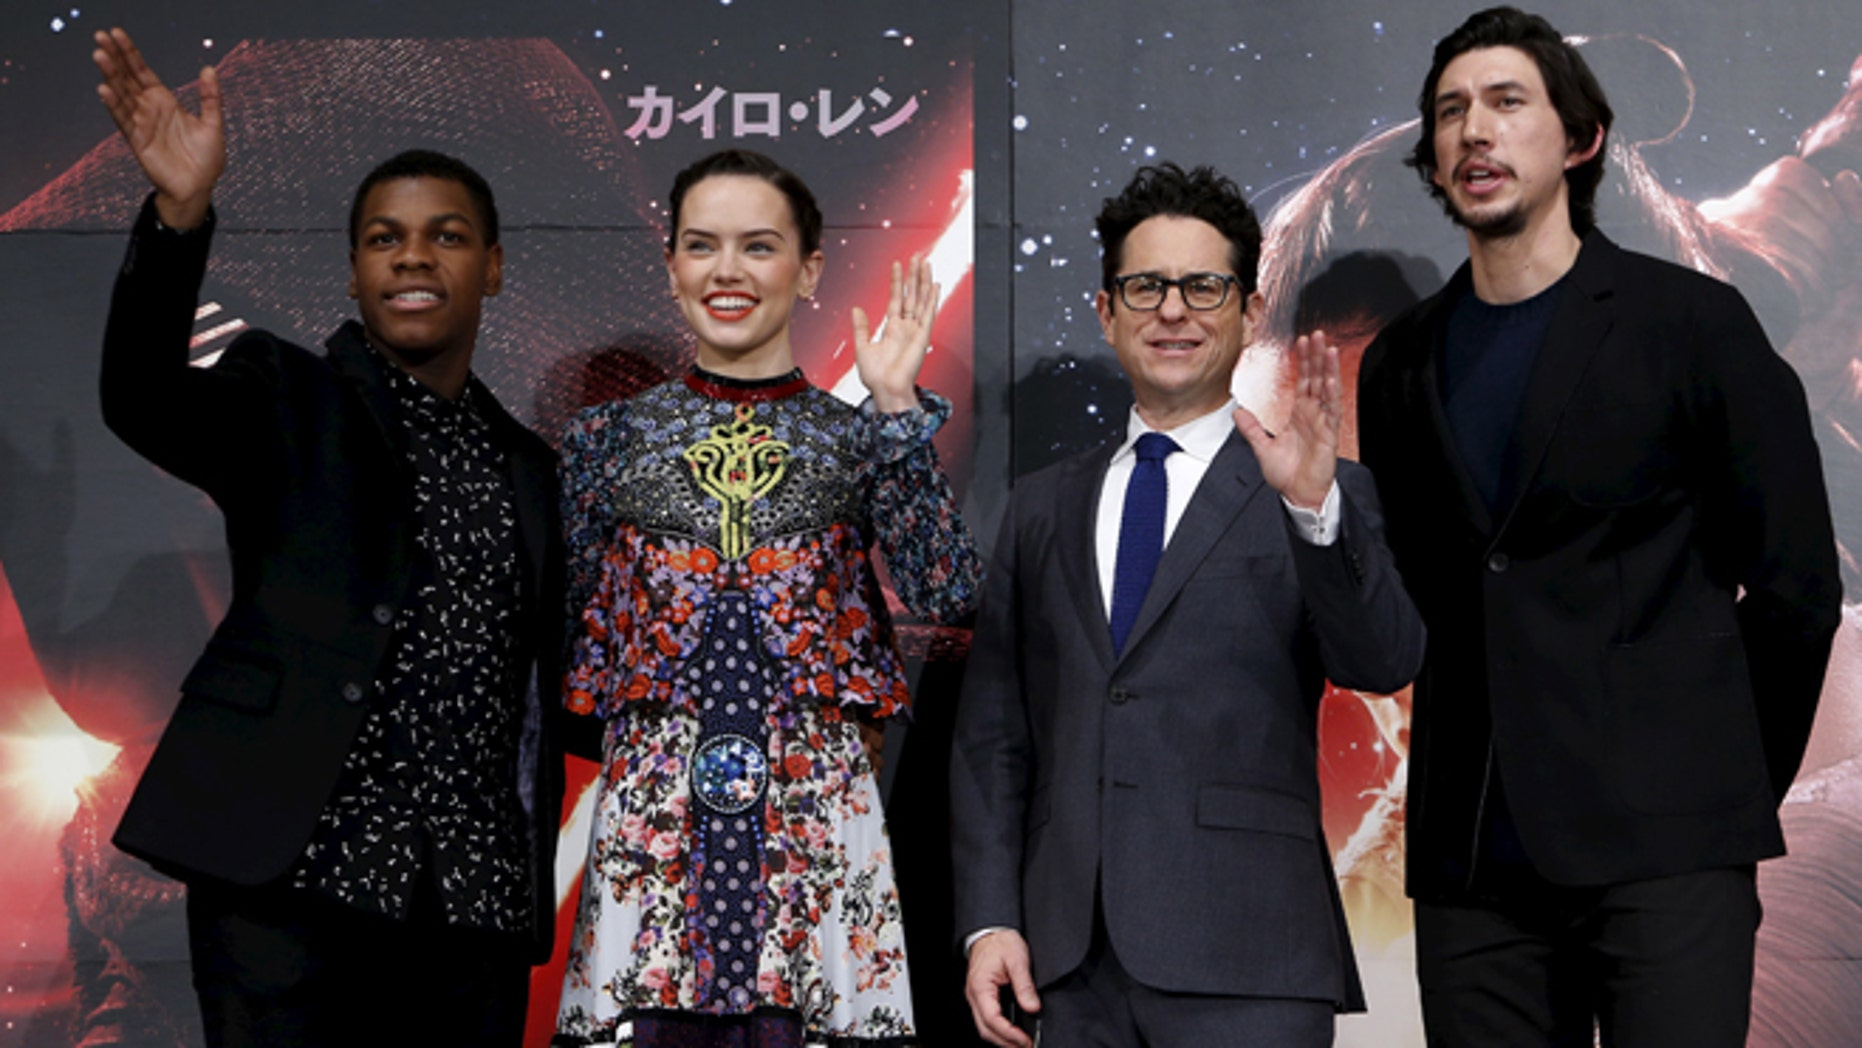 """December 11, 2015. Director J.J. Abrams (2nd R), cast members John Boyega (L), Daisy Ridley (2nd L), and Adam Driver pose for pictures with """"Star Wars"""" character BB-8 8(C) in Tokyo."""